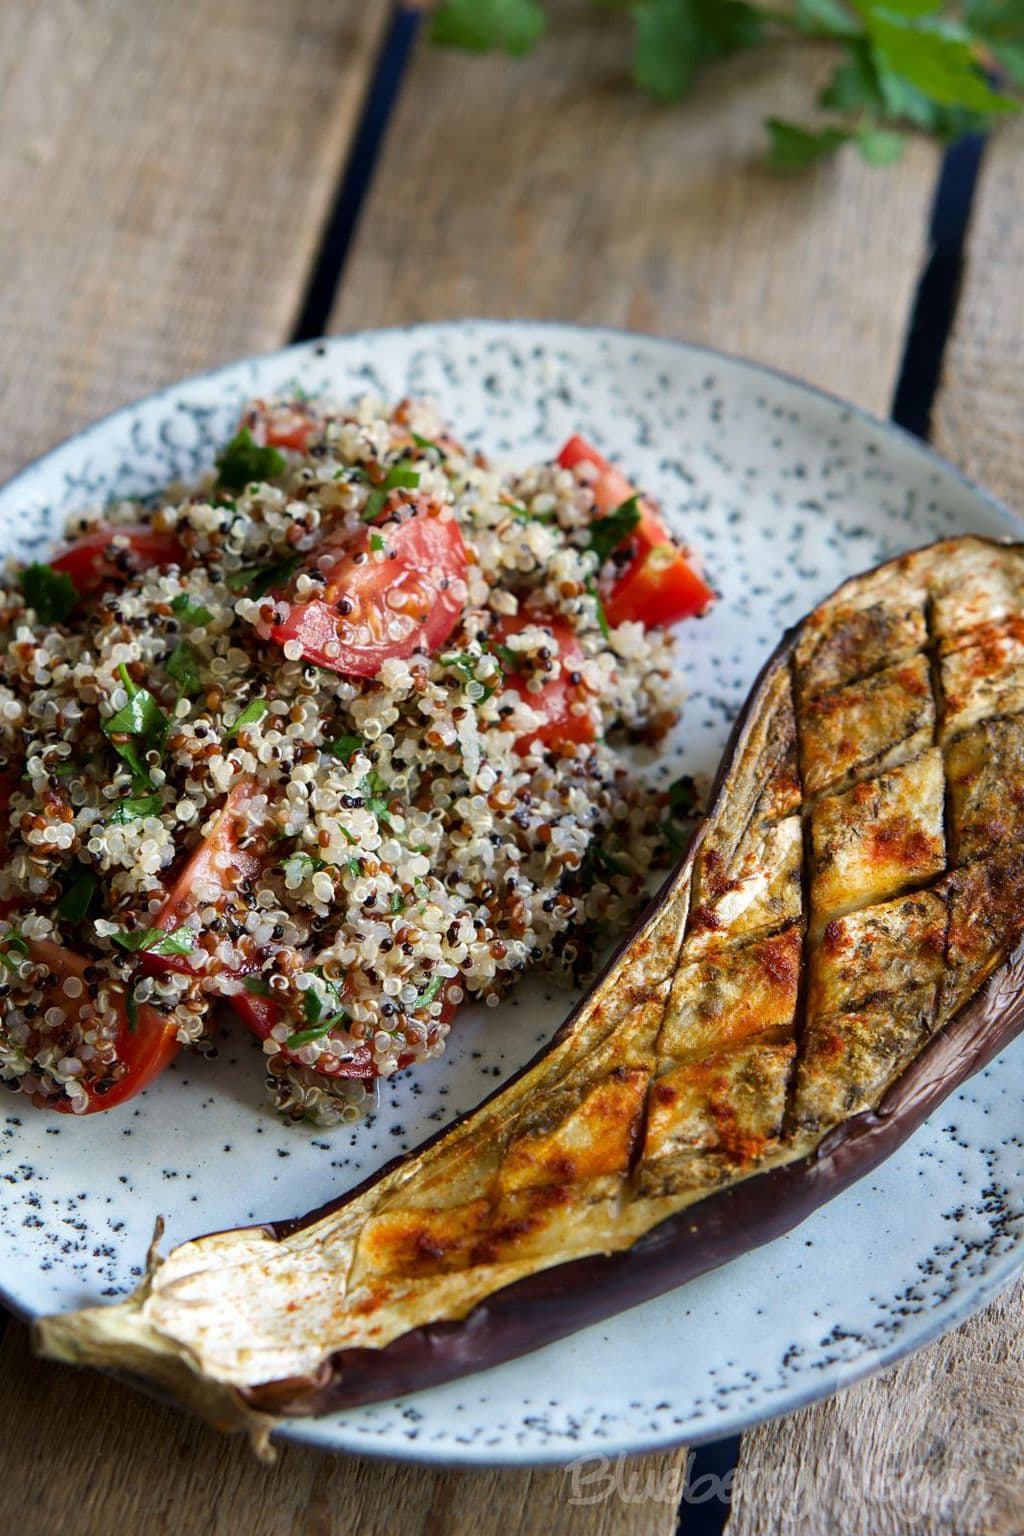 Baked Eggplant with Warm Quinoa Tabbouleh